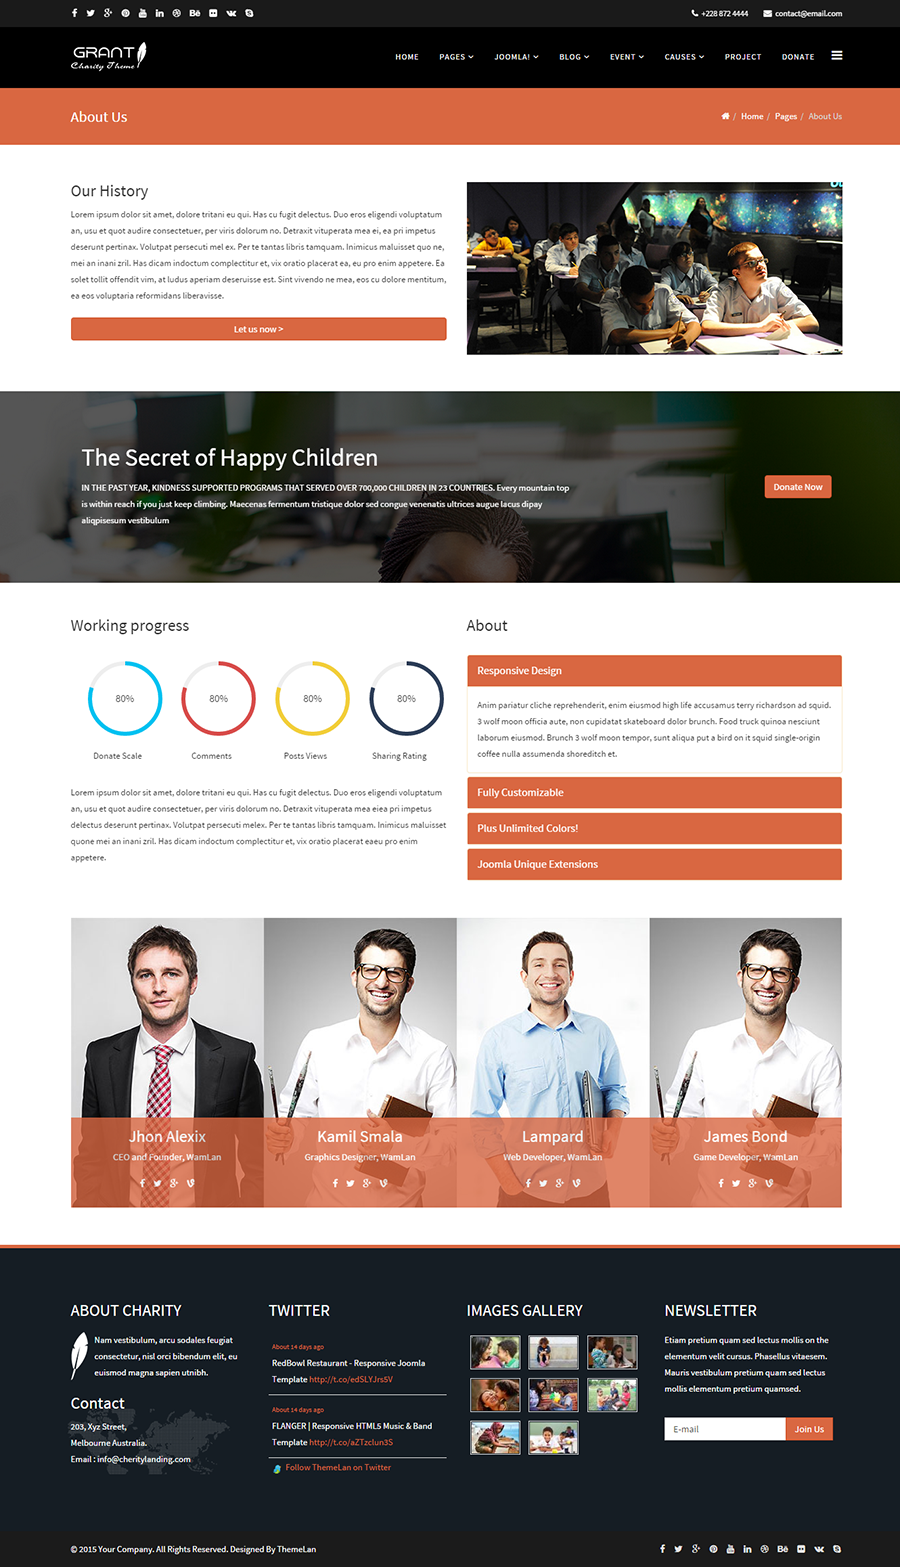 grant charity nonprofit ngo html5 template by themelan